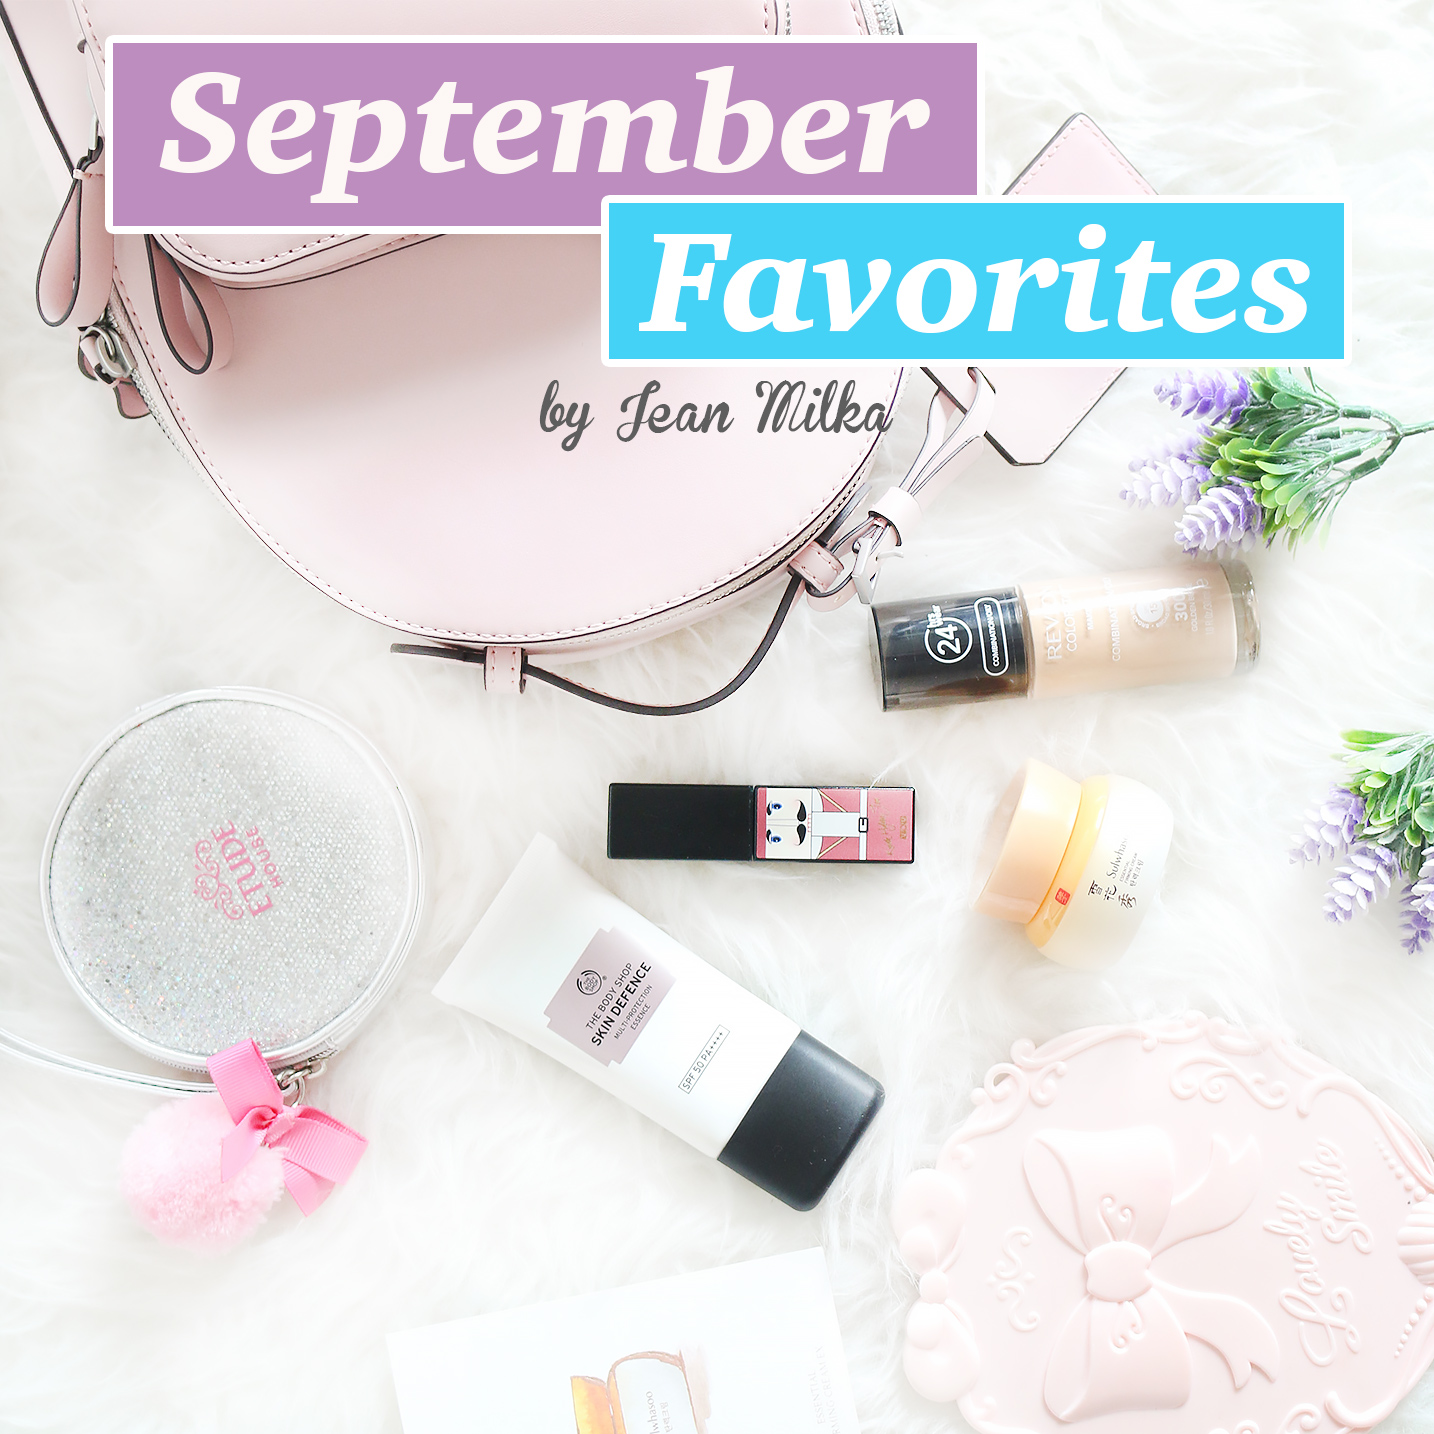 september favorites, beauty favorites, jean milka faves, jean milka, makeup, beauty, skincare, beauty blog, favorites